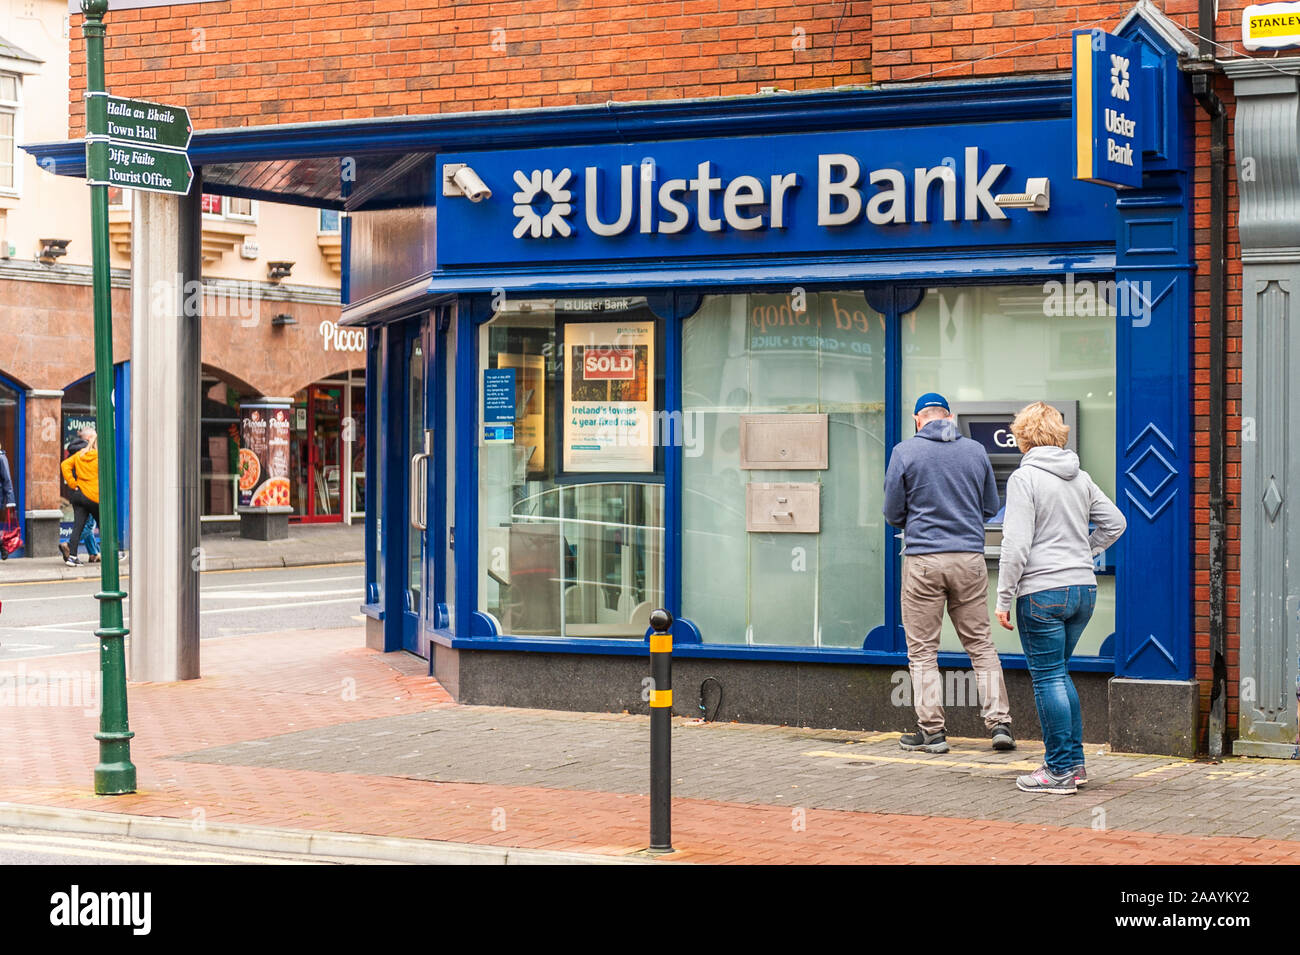 people-withdraw-money-from-an-ulster-bank-atm-in-killarney-county-kerry-ireland-2AAYKY2.jpg